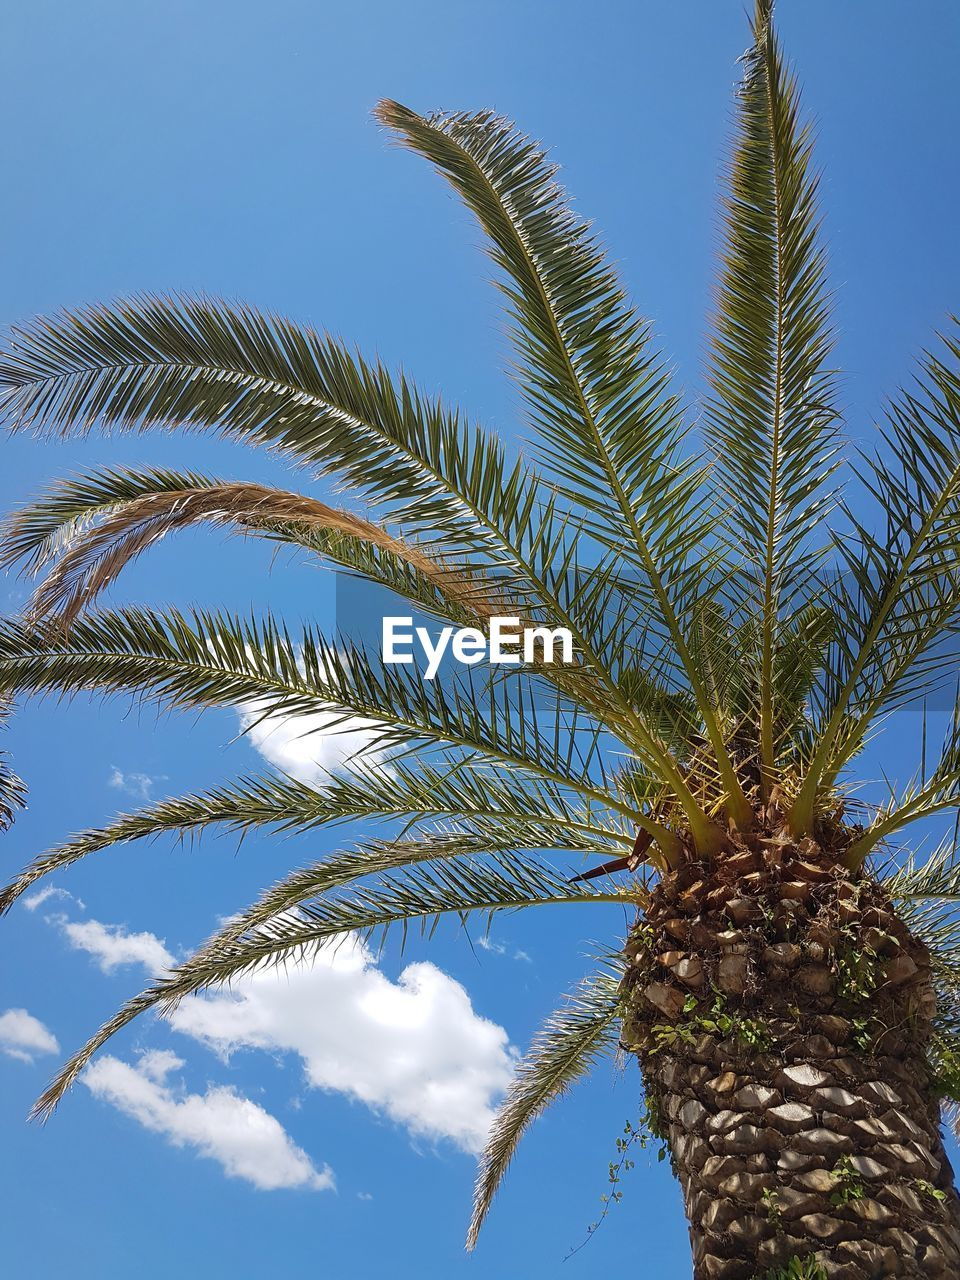 plant, growth, palm tree, sky, low angle view, tree, tropical climate, nature, leaf, palm leaf, beauty in nature, no people, tree trunk, day, trunk, cloud - sky, date palm tree, tranquility, outdoors, green color, tropical tree, coconut palm tree